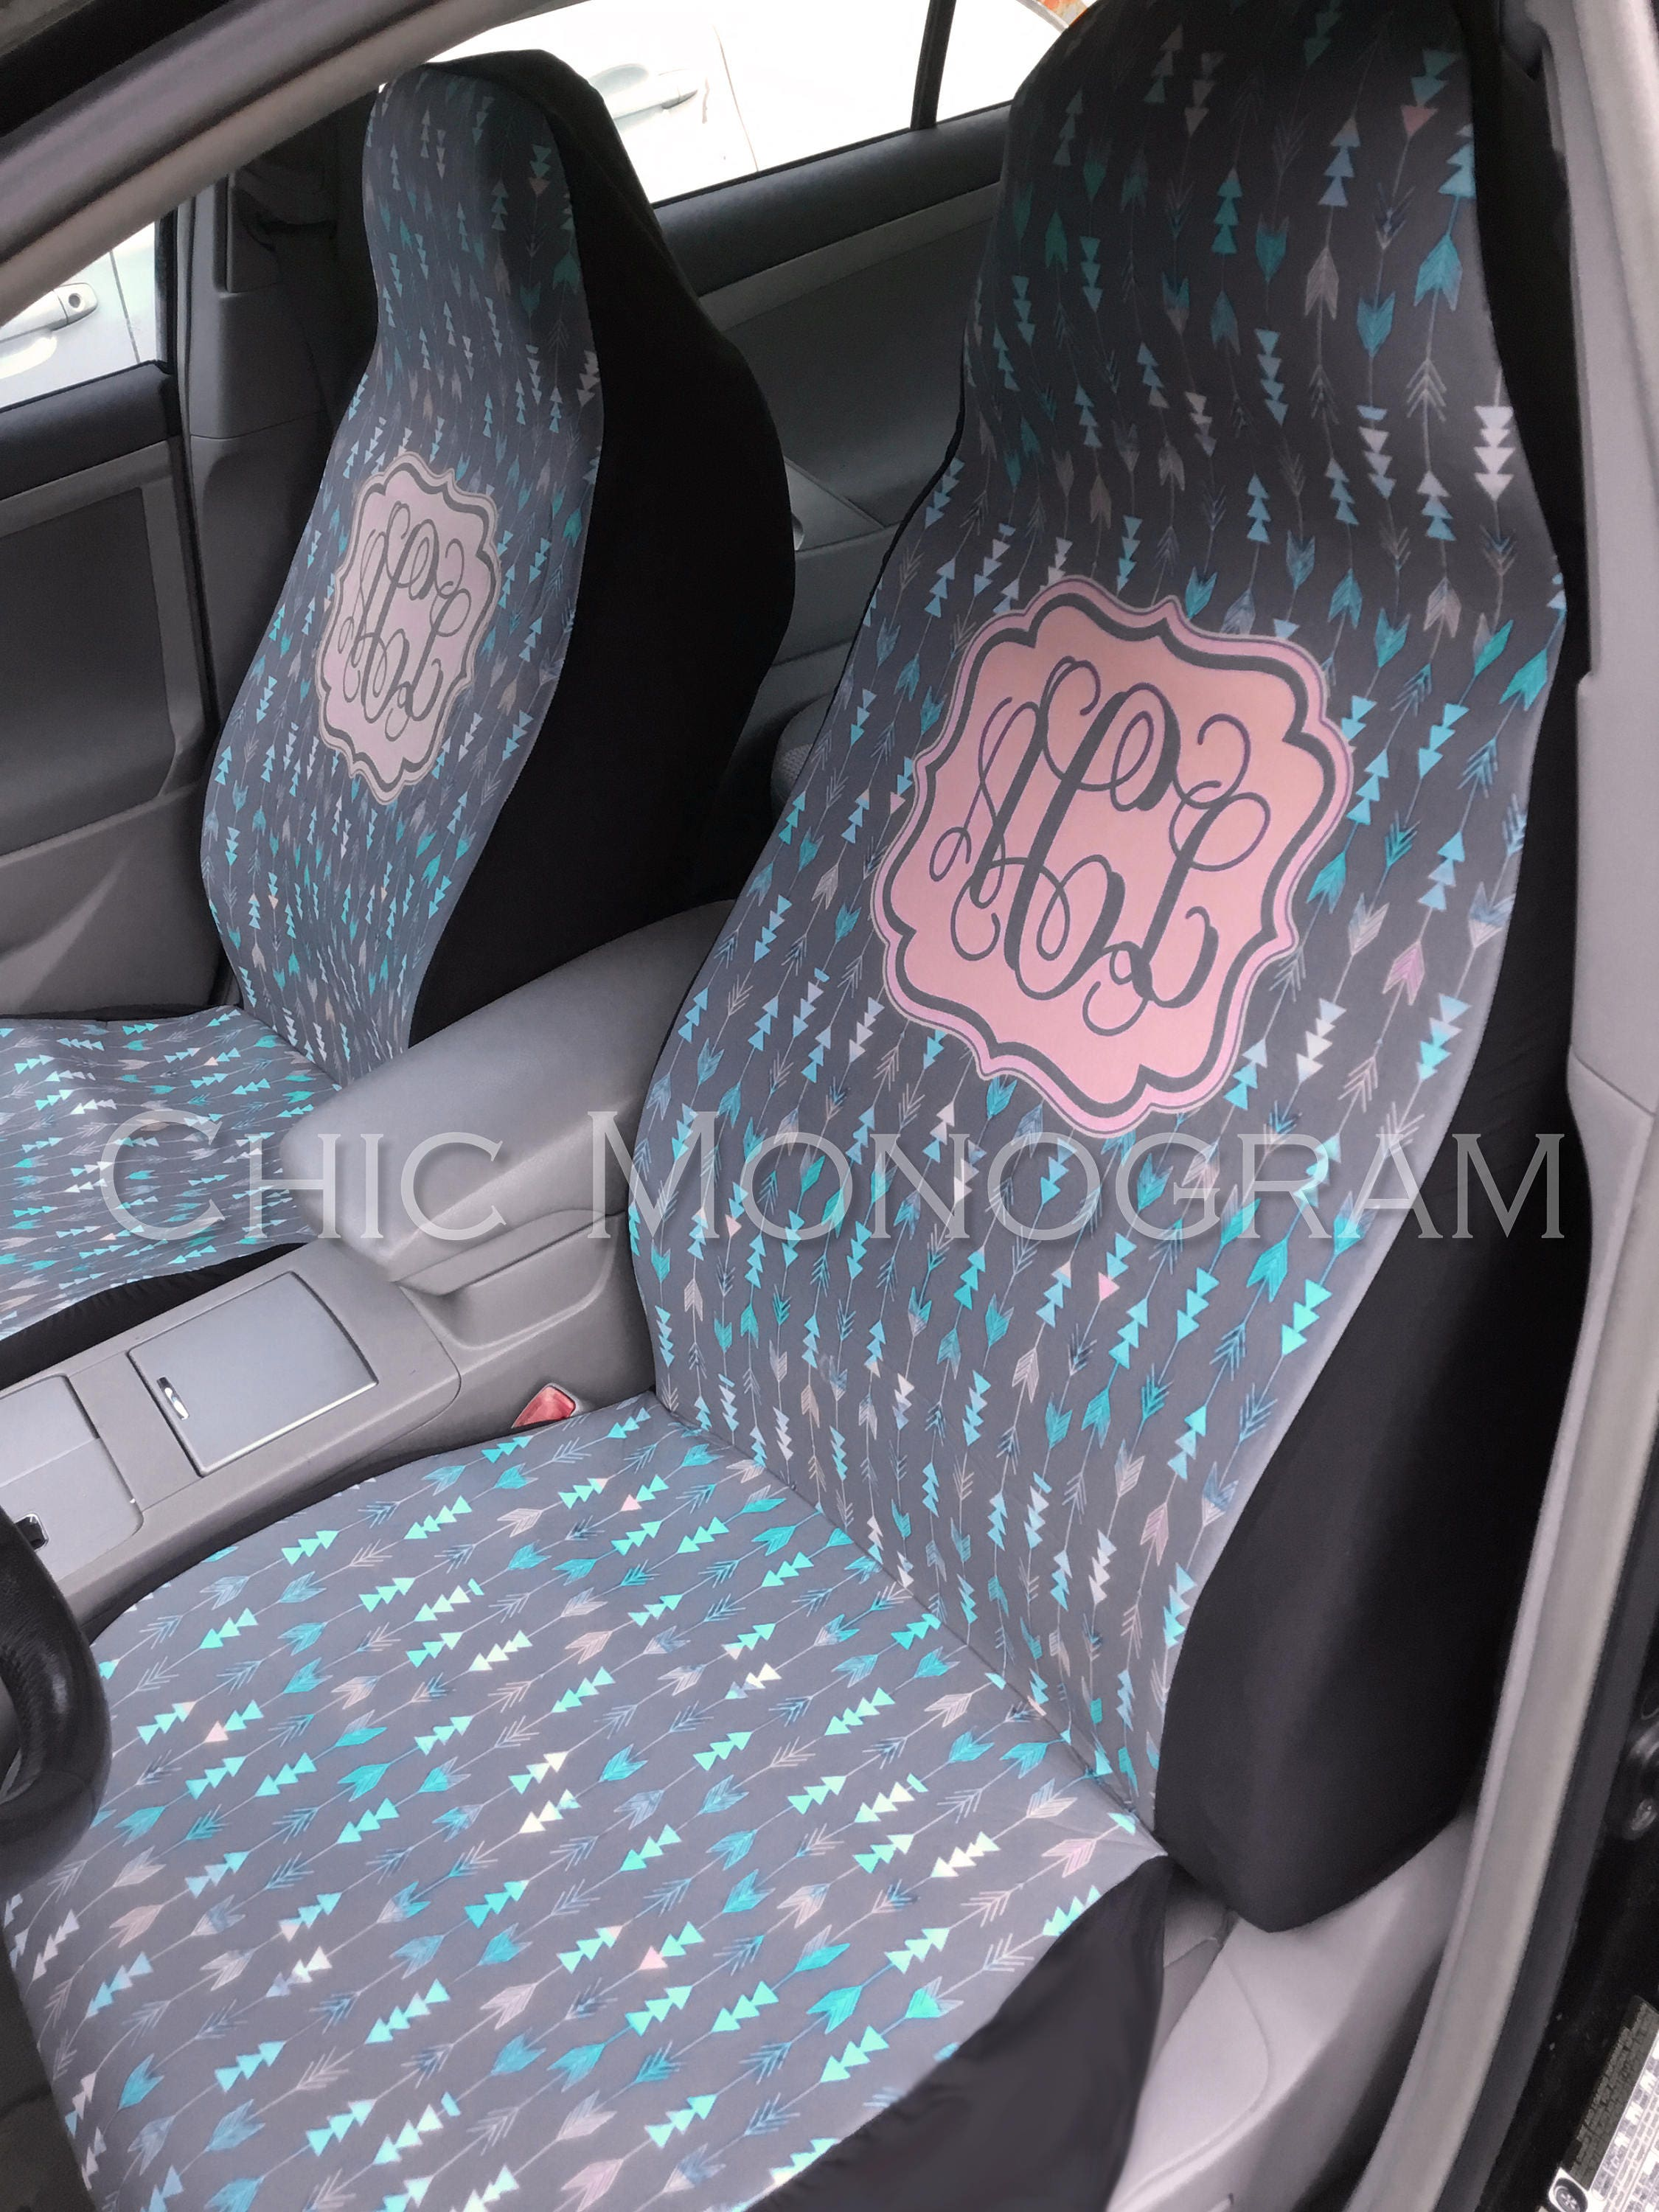 Aztec Car Seat Covers Set Of Two Front Tribal Monogrammed Personalized Accessories For Vehicle